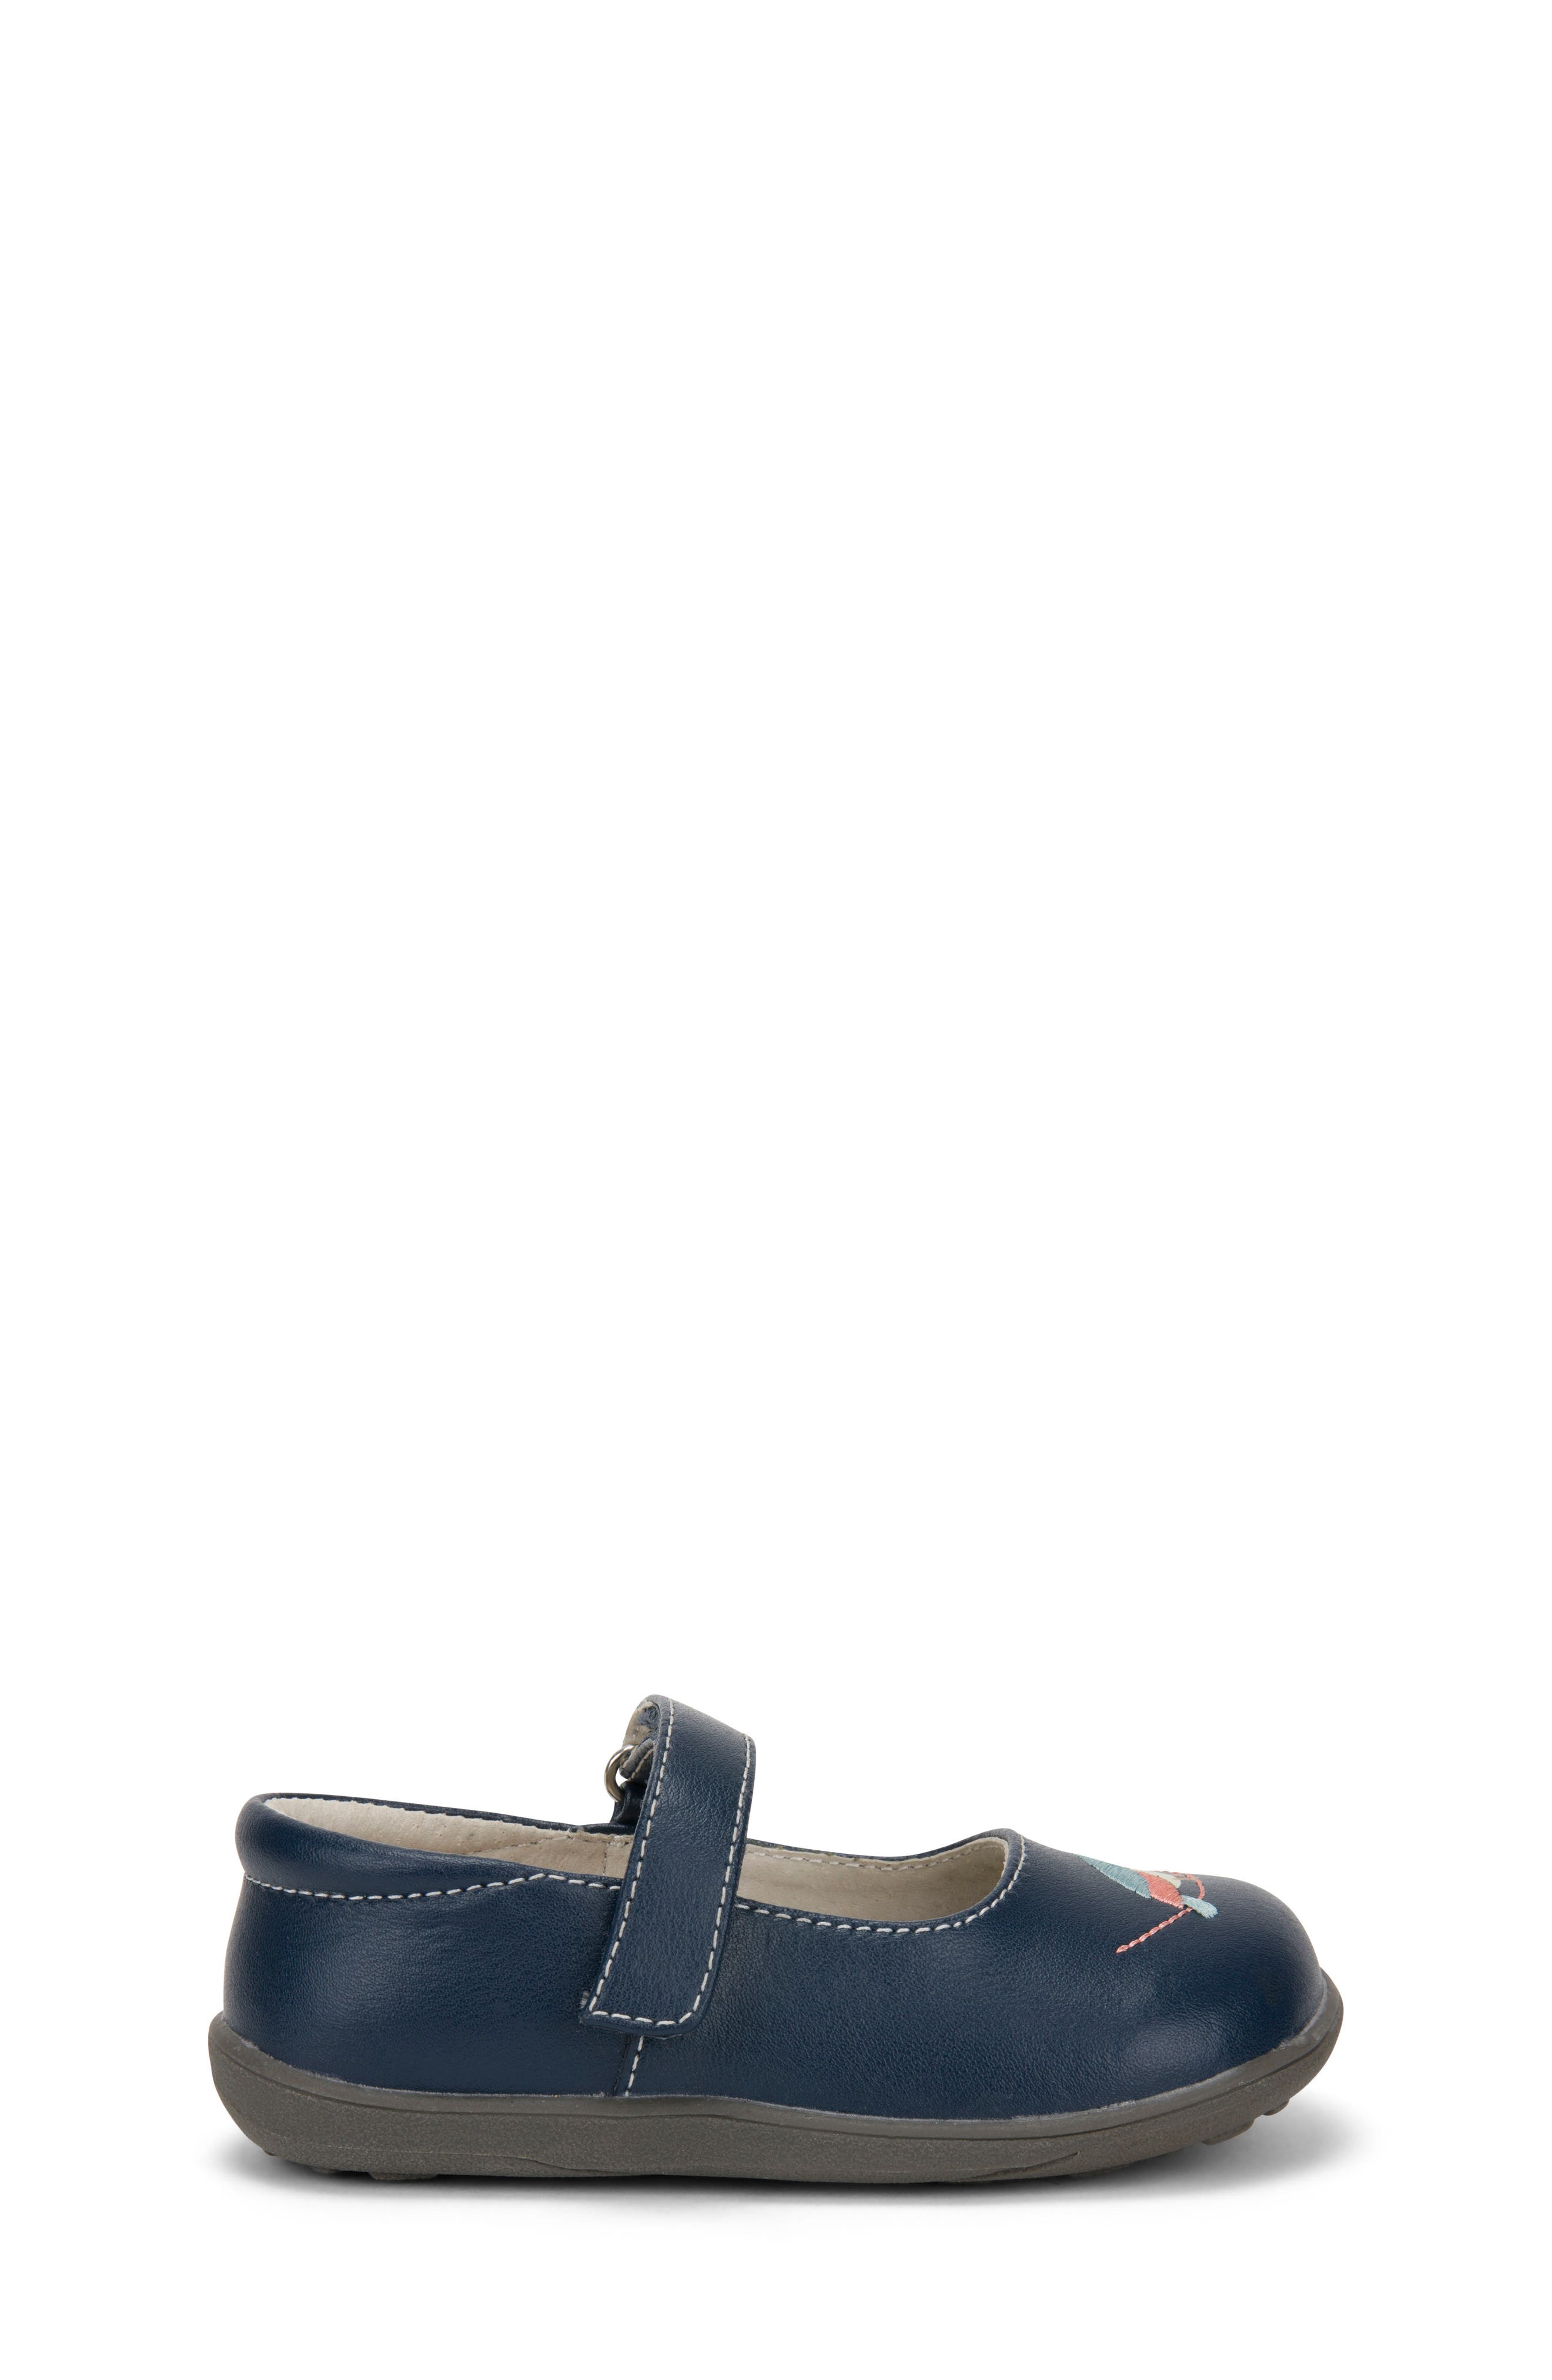 Ava Mary Jane Flat,                             Alternate thumbnail 4, color,                             Navy Leather